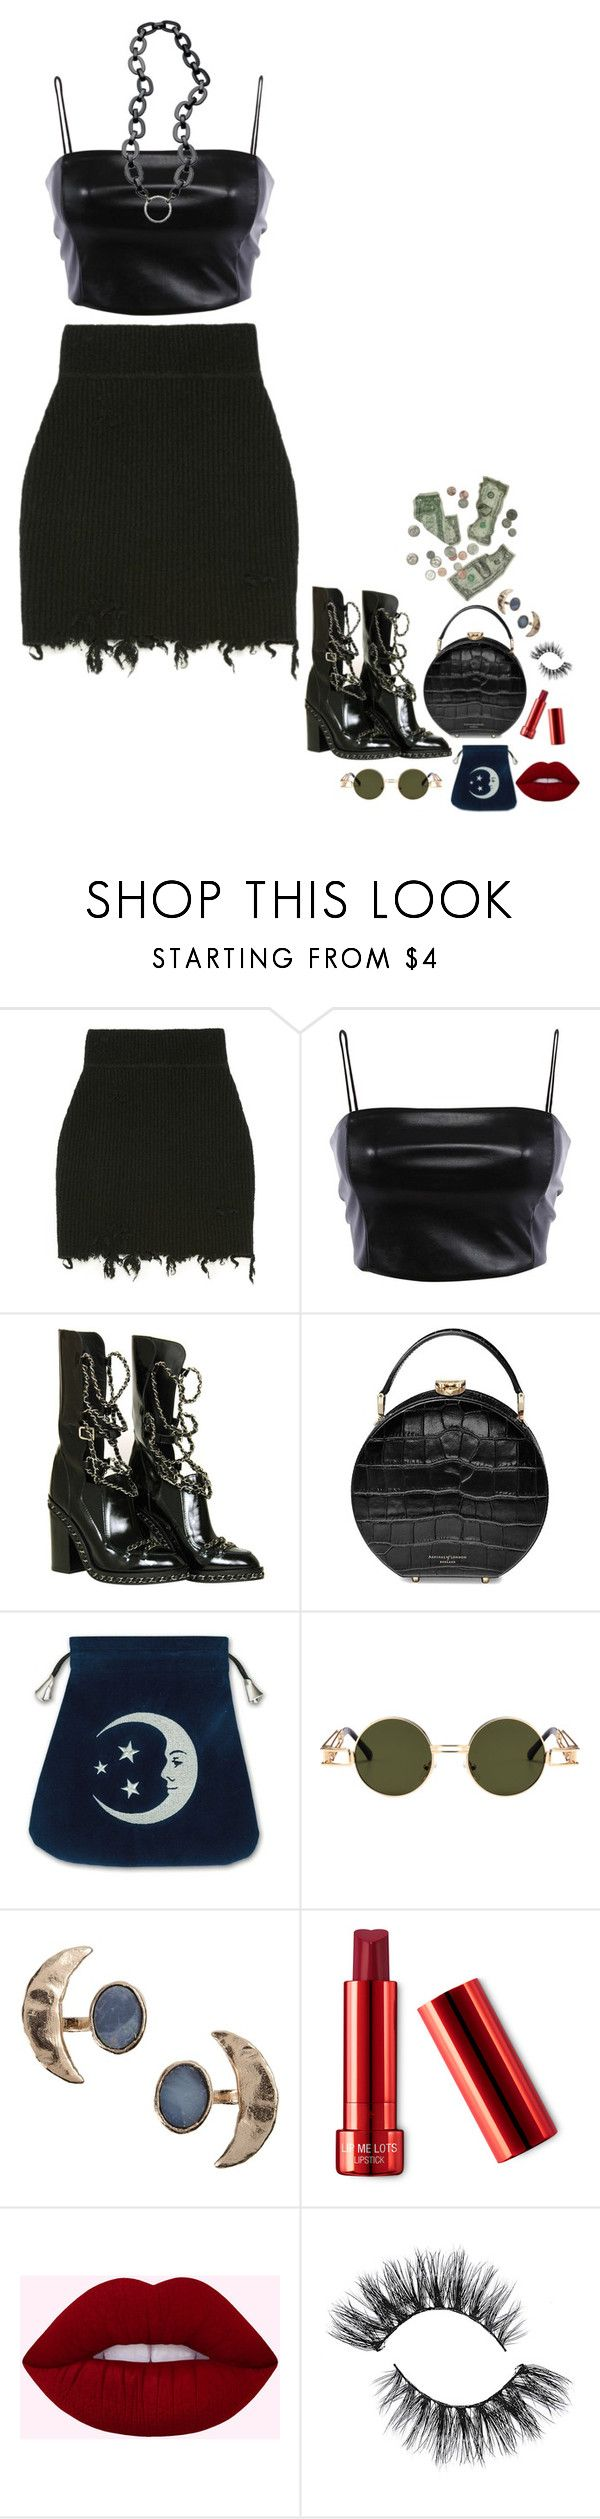 """small plastic bags in big dance clubs"" by vampirliebling ❤ liked on Polyvore featuring Chanel, Aspinal of London, La LOOP and Bjørg"